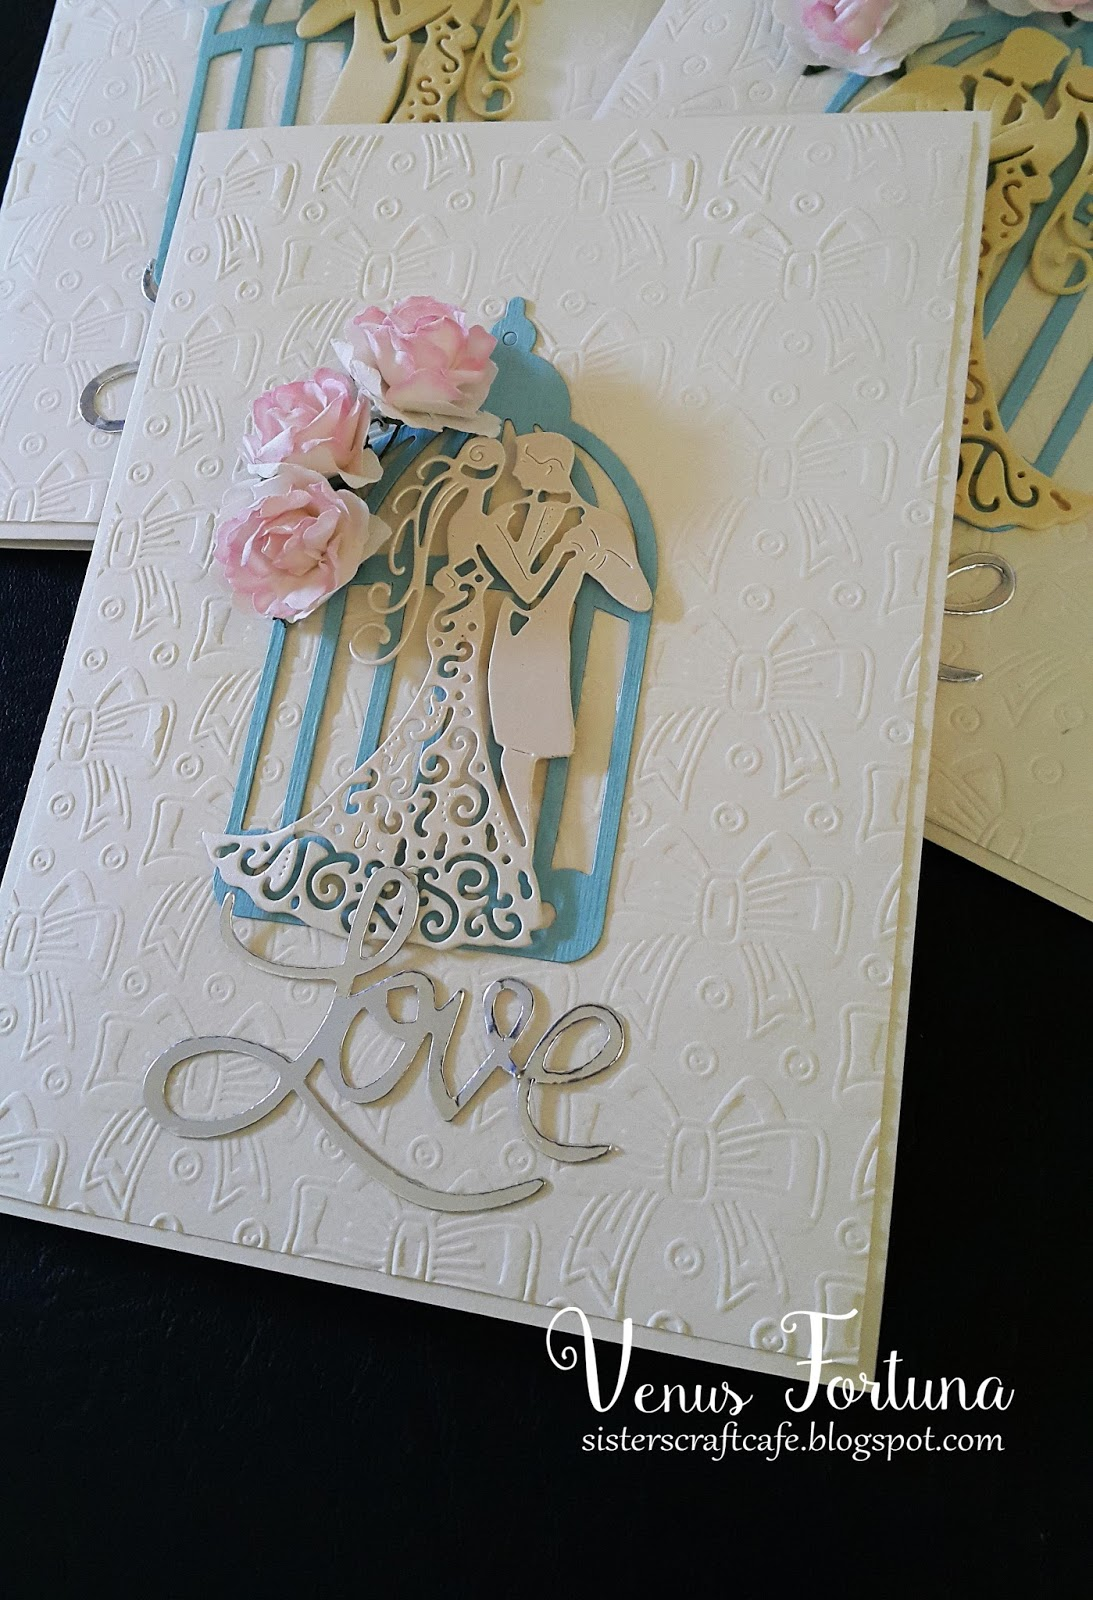 Handmade wedding cards easy project Sisters Craft Caf